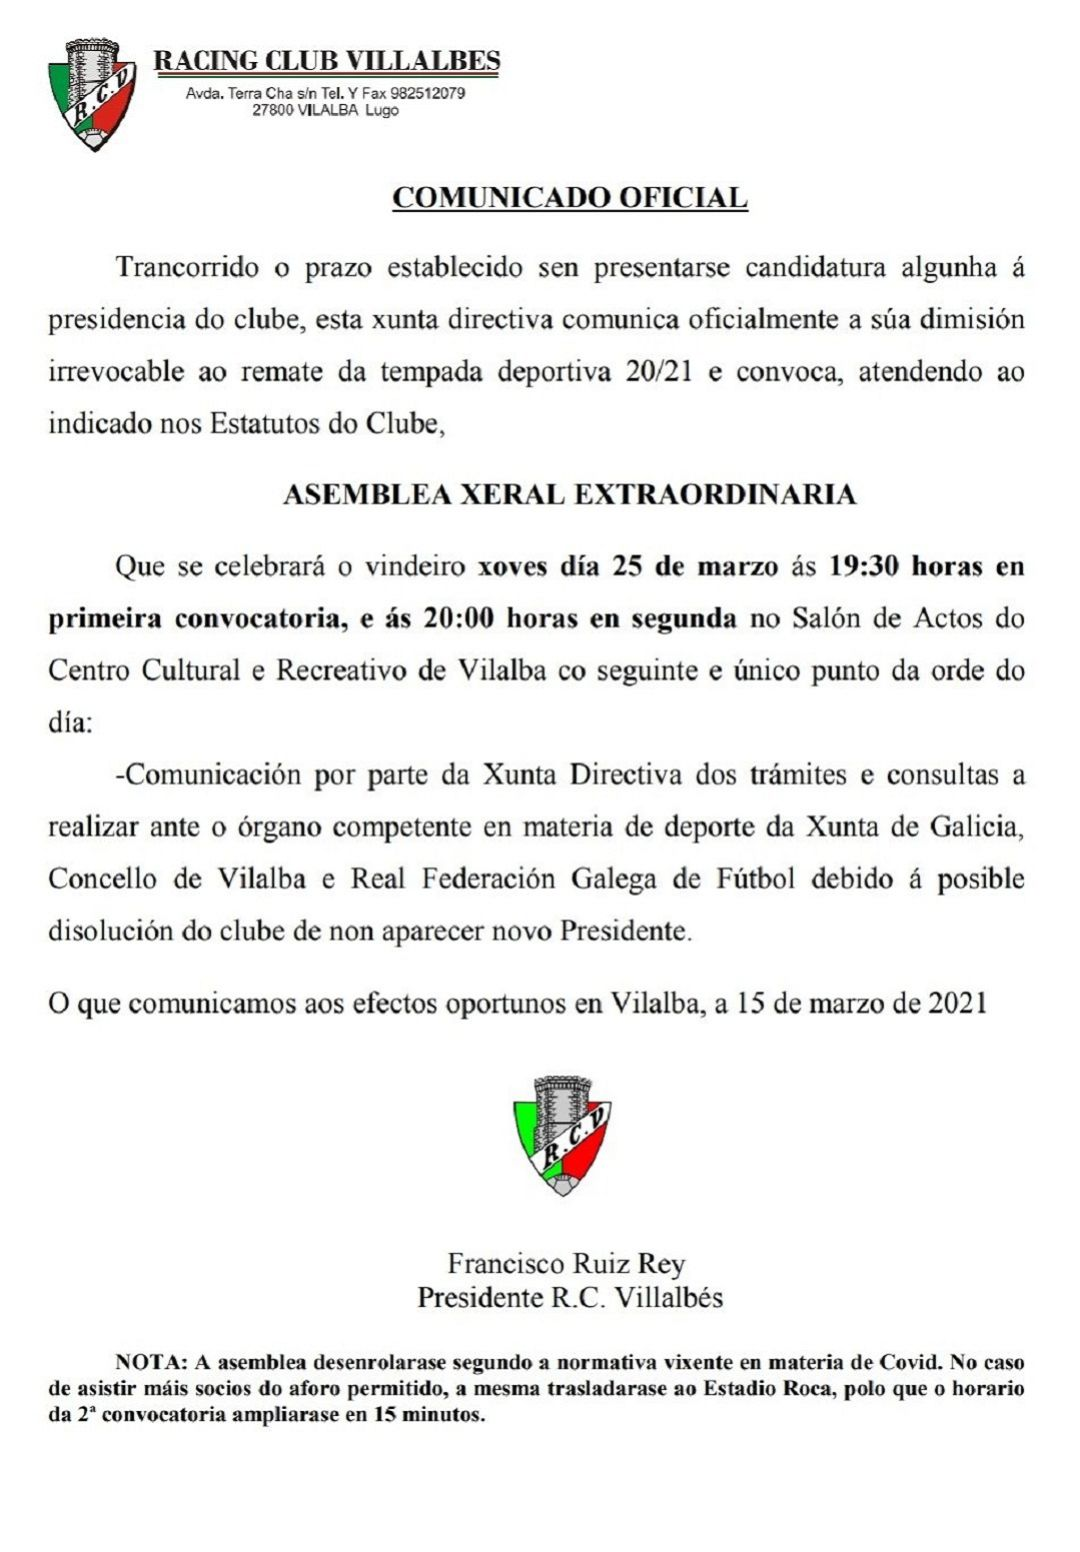 Comunicado oficial do Racing Vilalbés